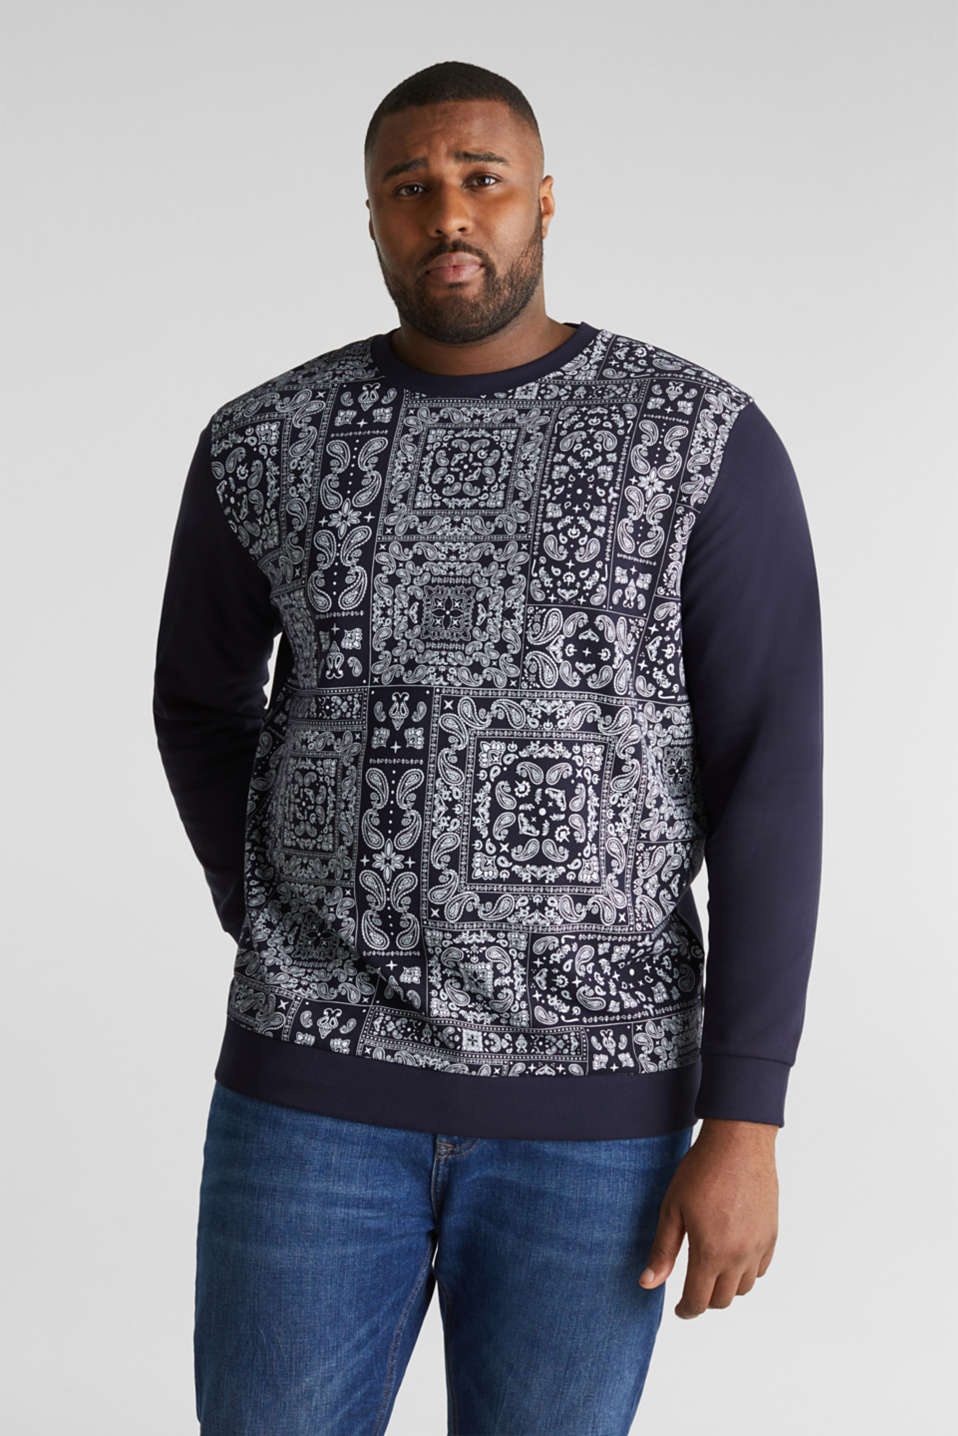 Esprit - Sweatshirt with a paisley pattern, 100% cotton